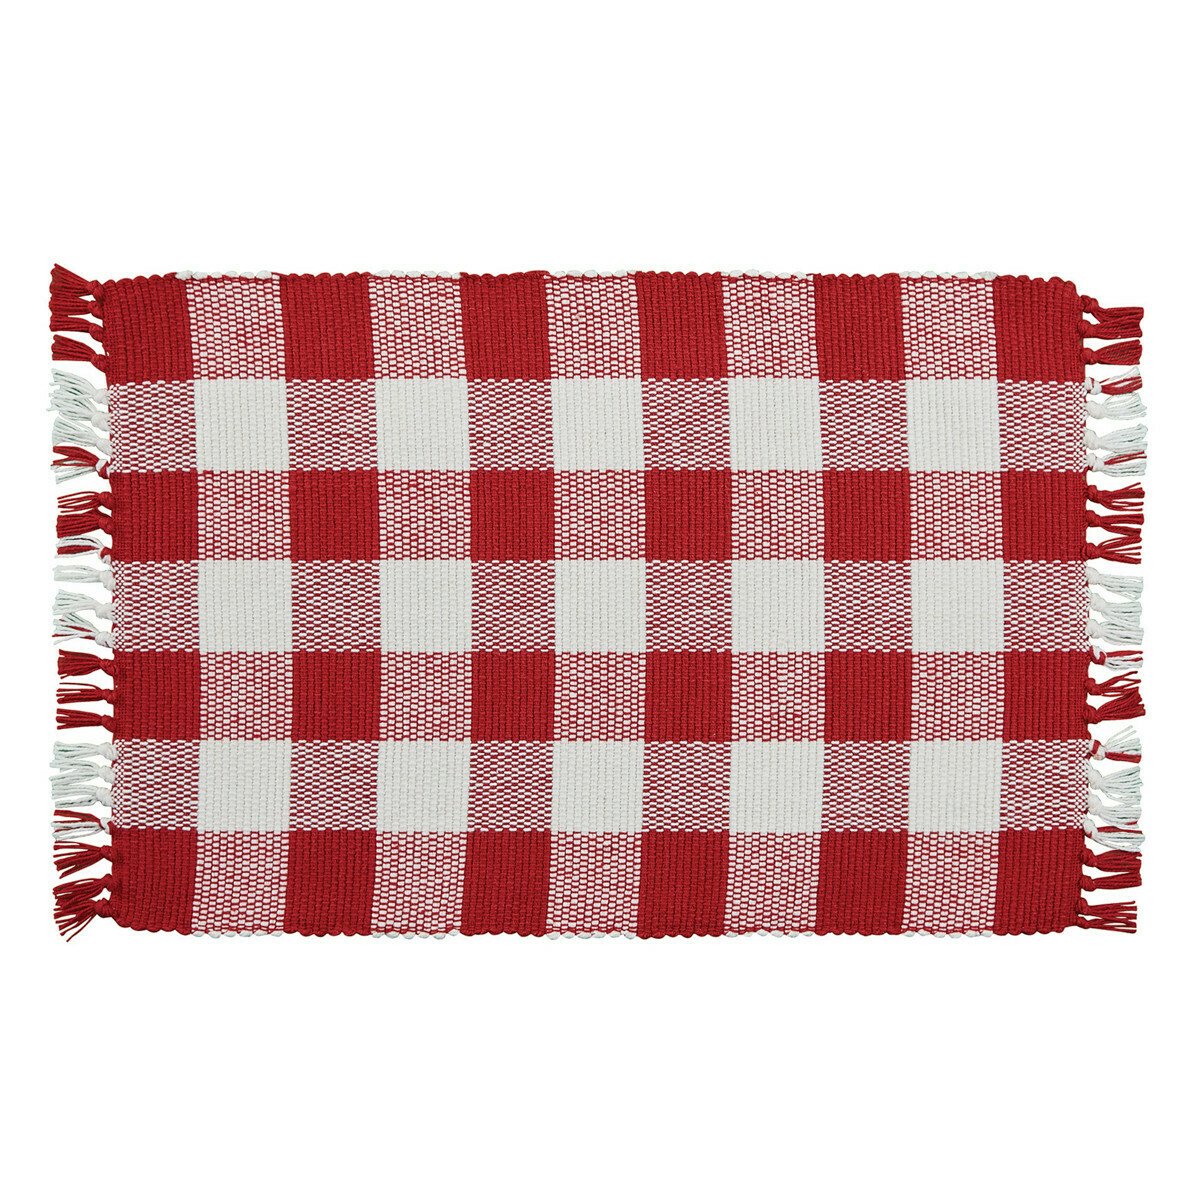 Wicklow Check Red & Cream Placemat